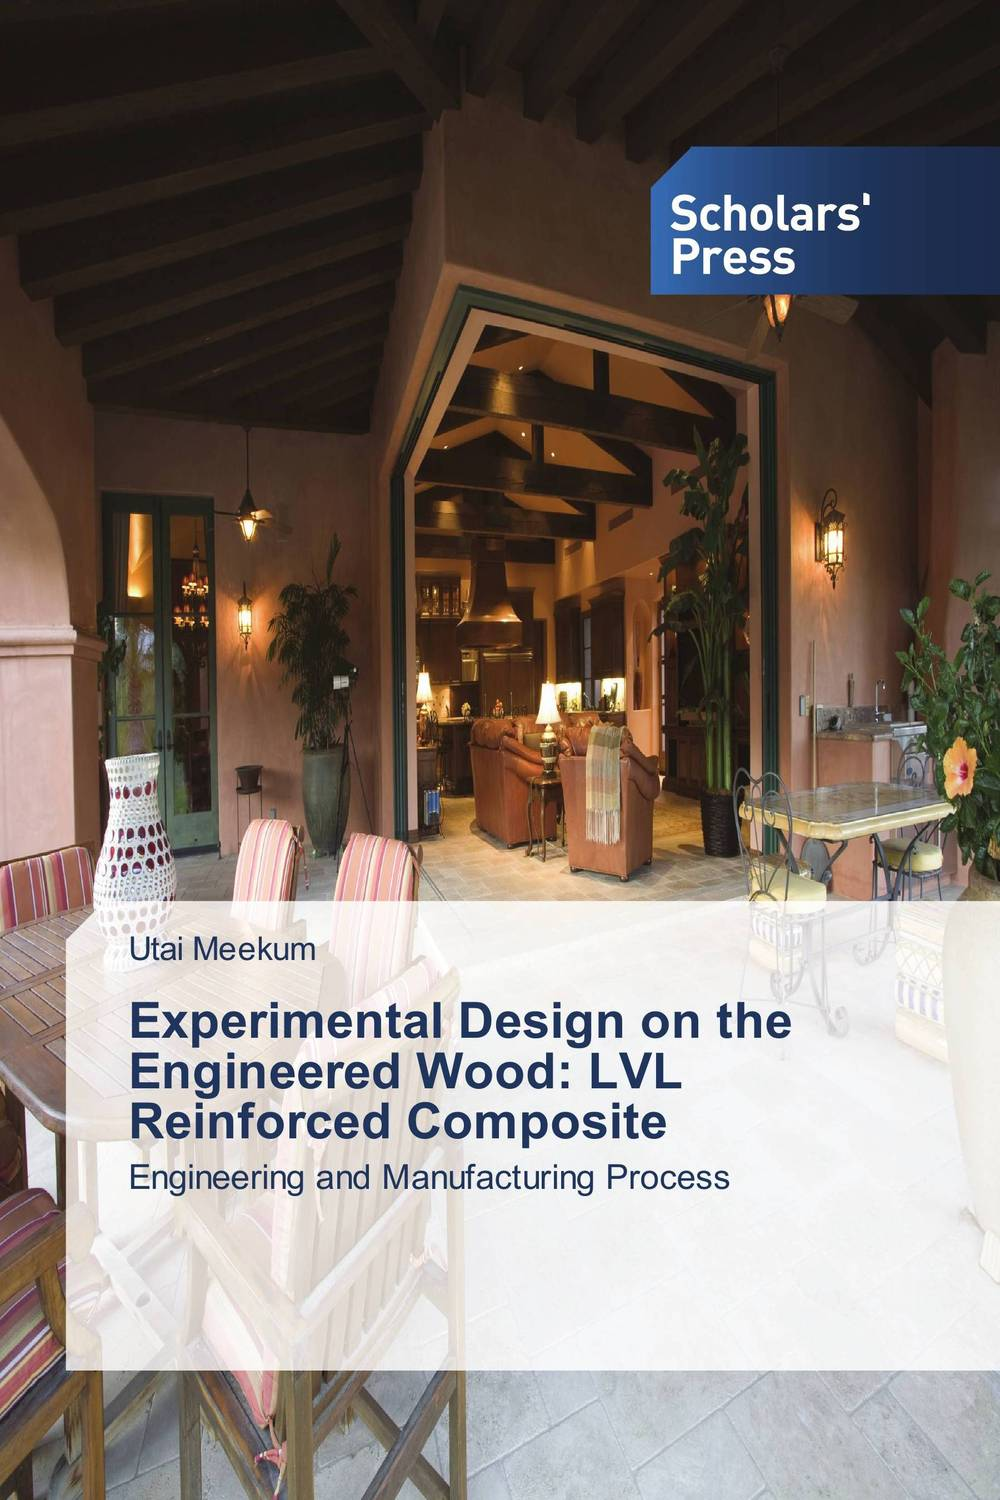 Experimental Design on the Engineered Wood: LVL Reinforced Composite composite structures design safety and innovation